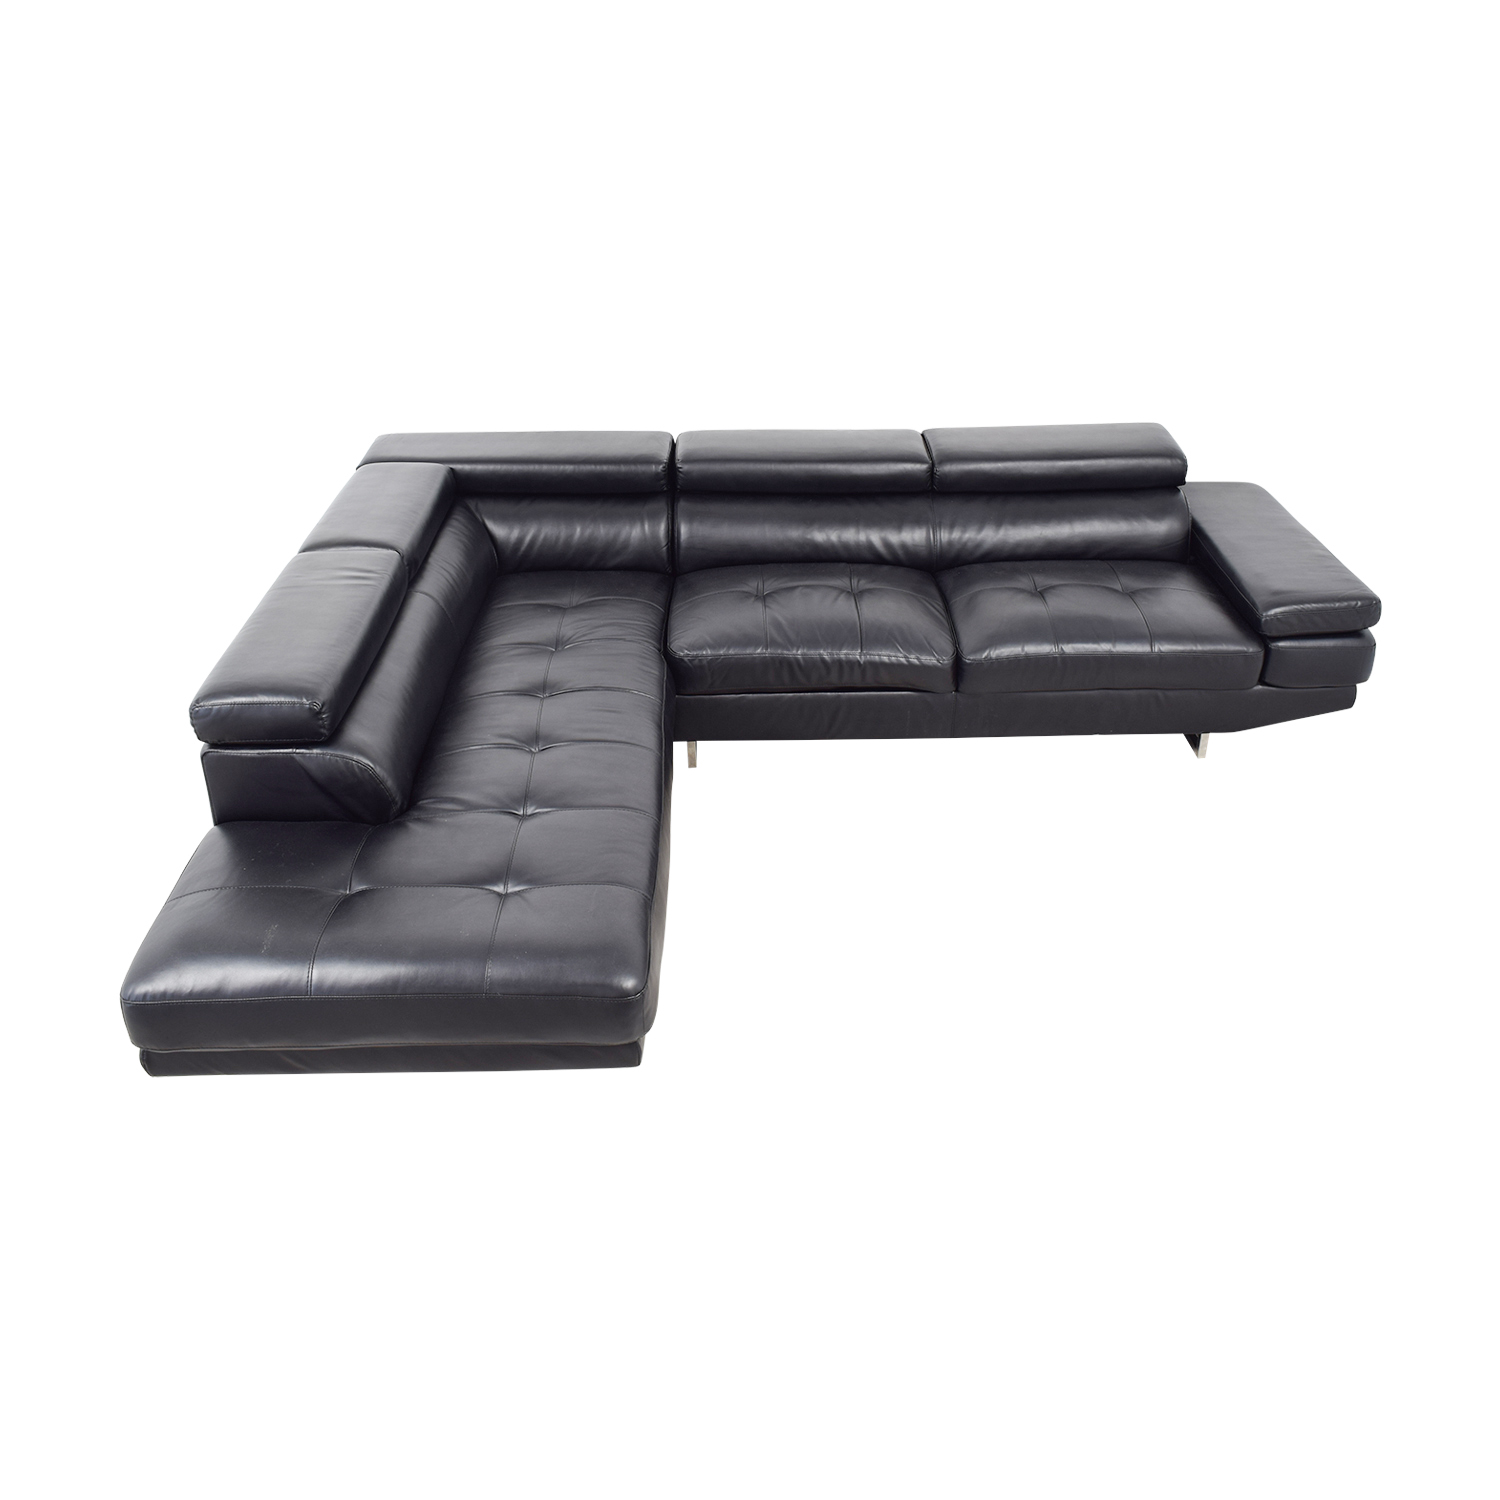 Brayden Studio Brayden Studio Black Tufted Leather Sectional Black